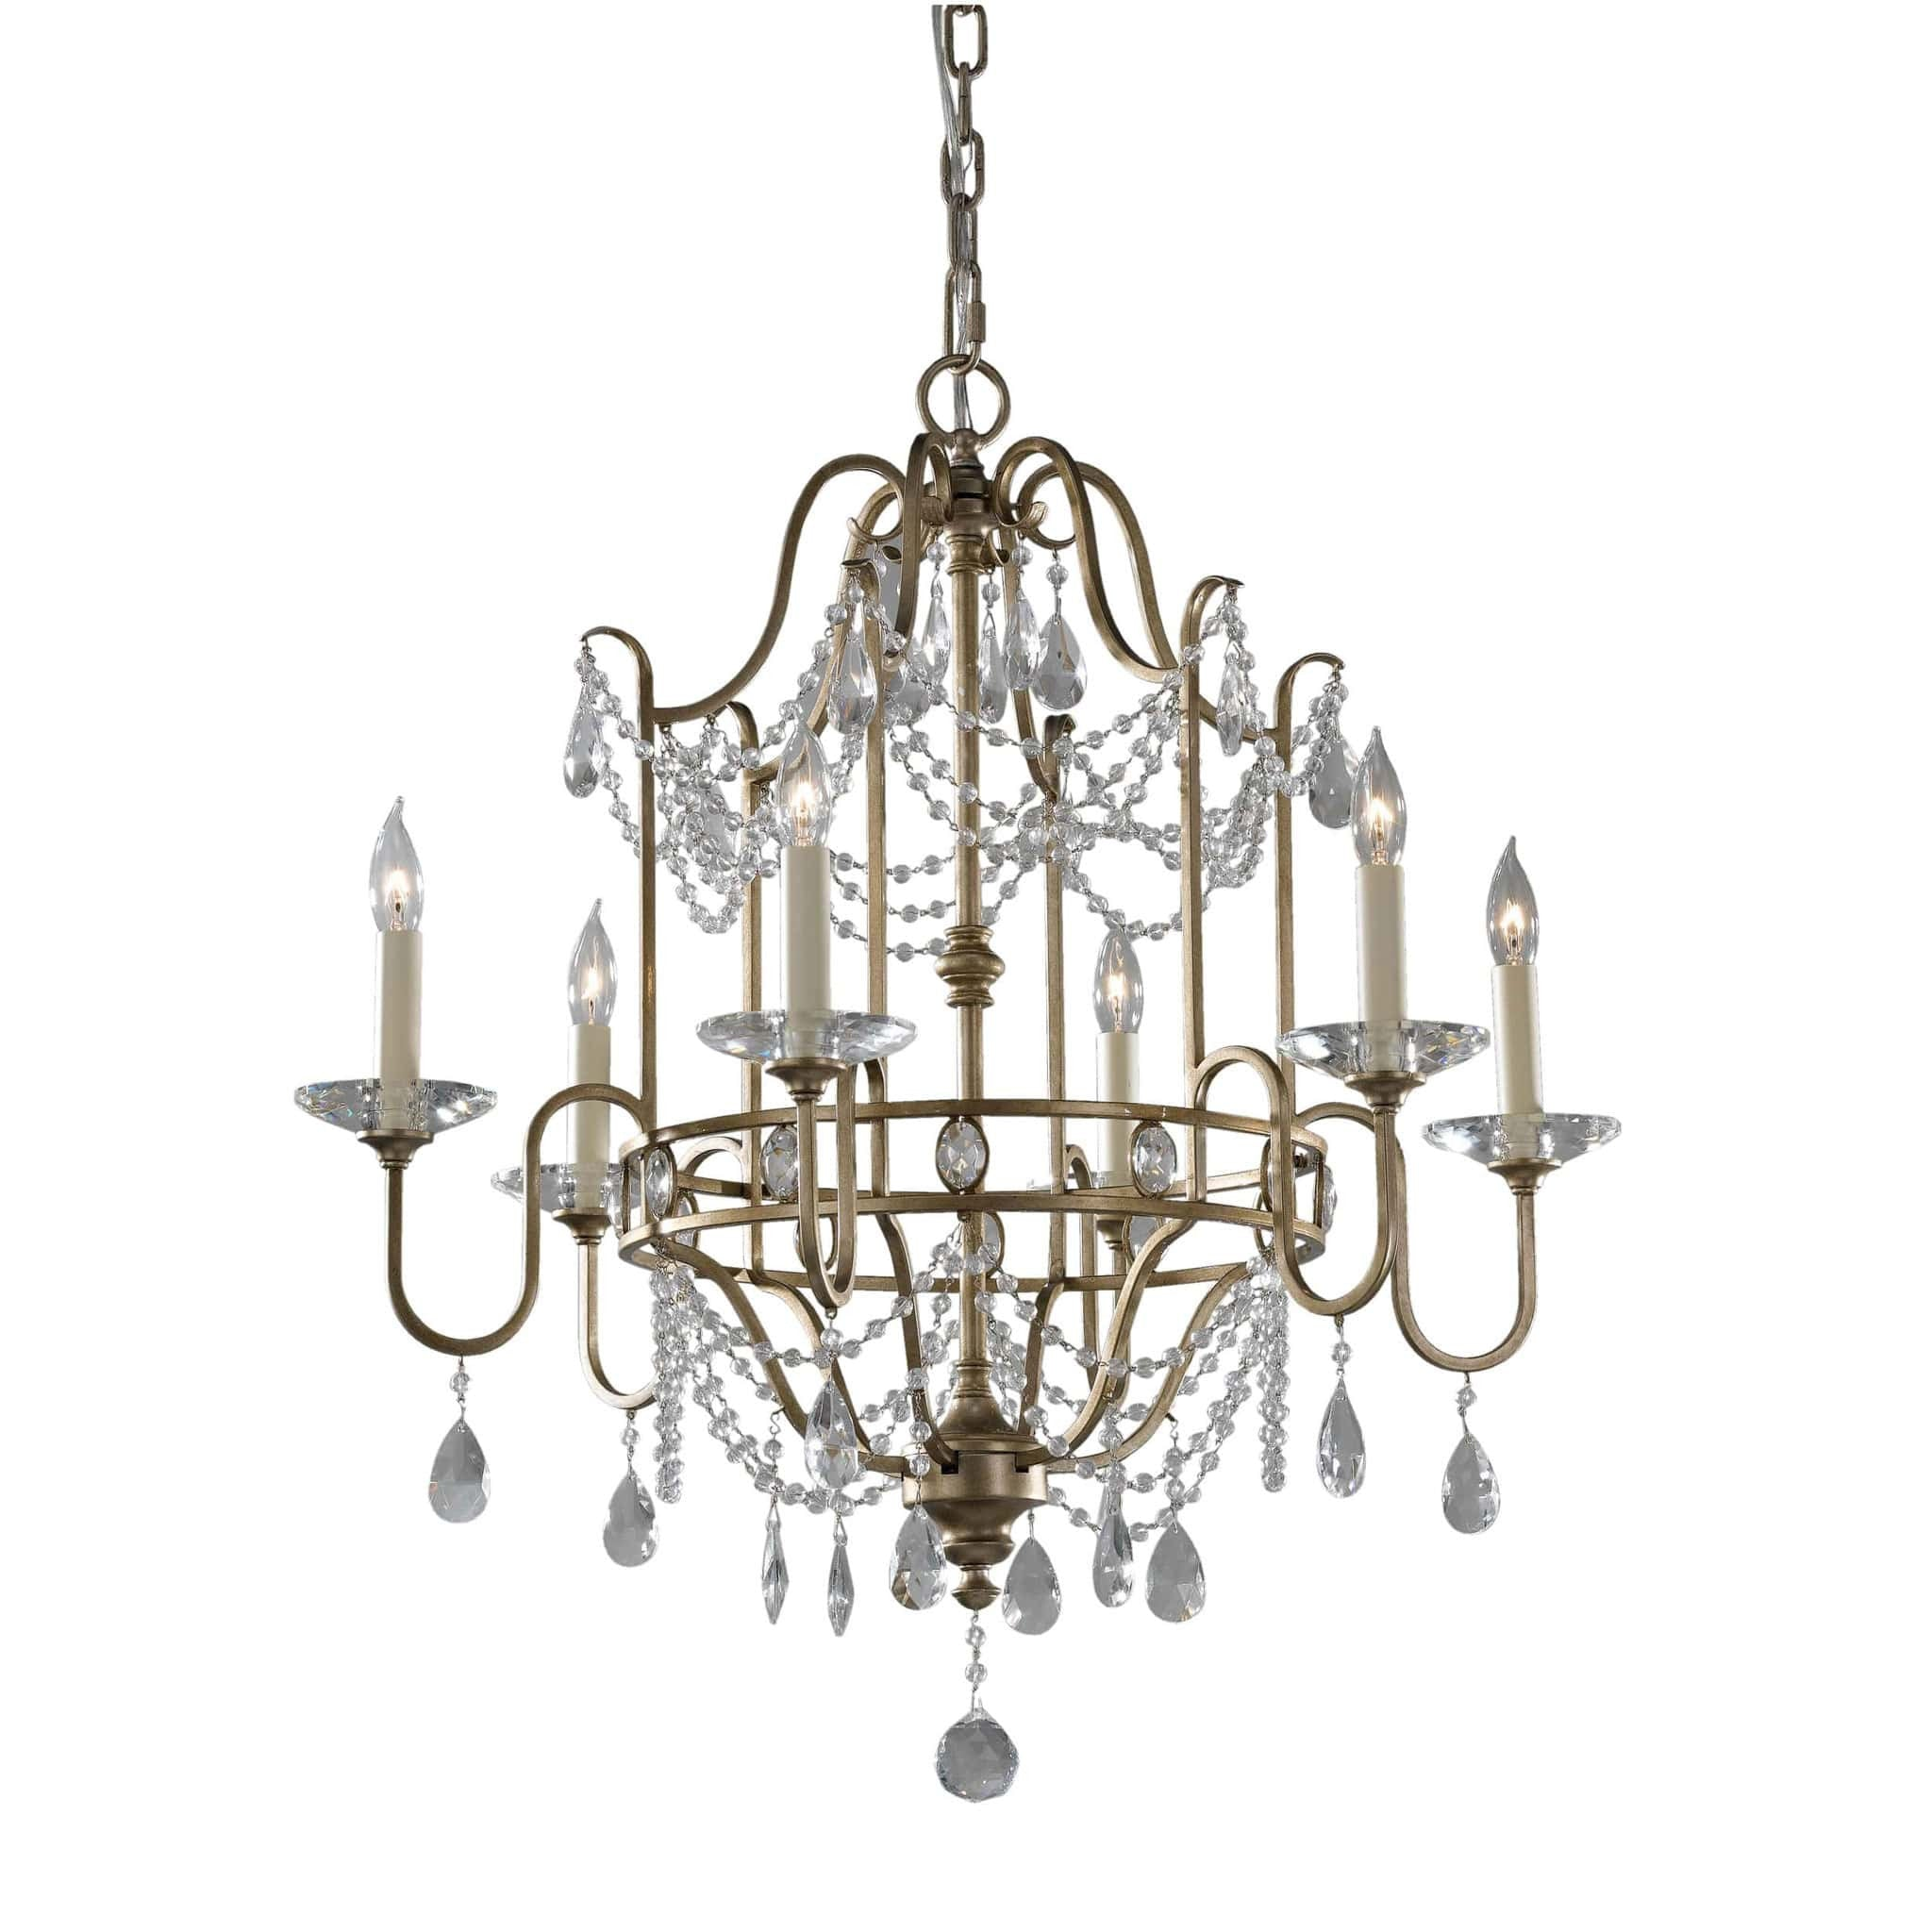 Feiss Gianna 6 Light Gilded Silver Duo Mount Chandelier FE/GIANNA6 ...